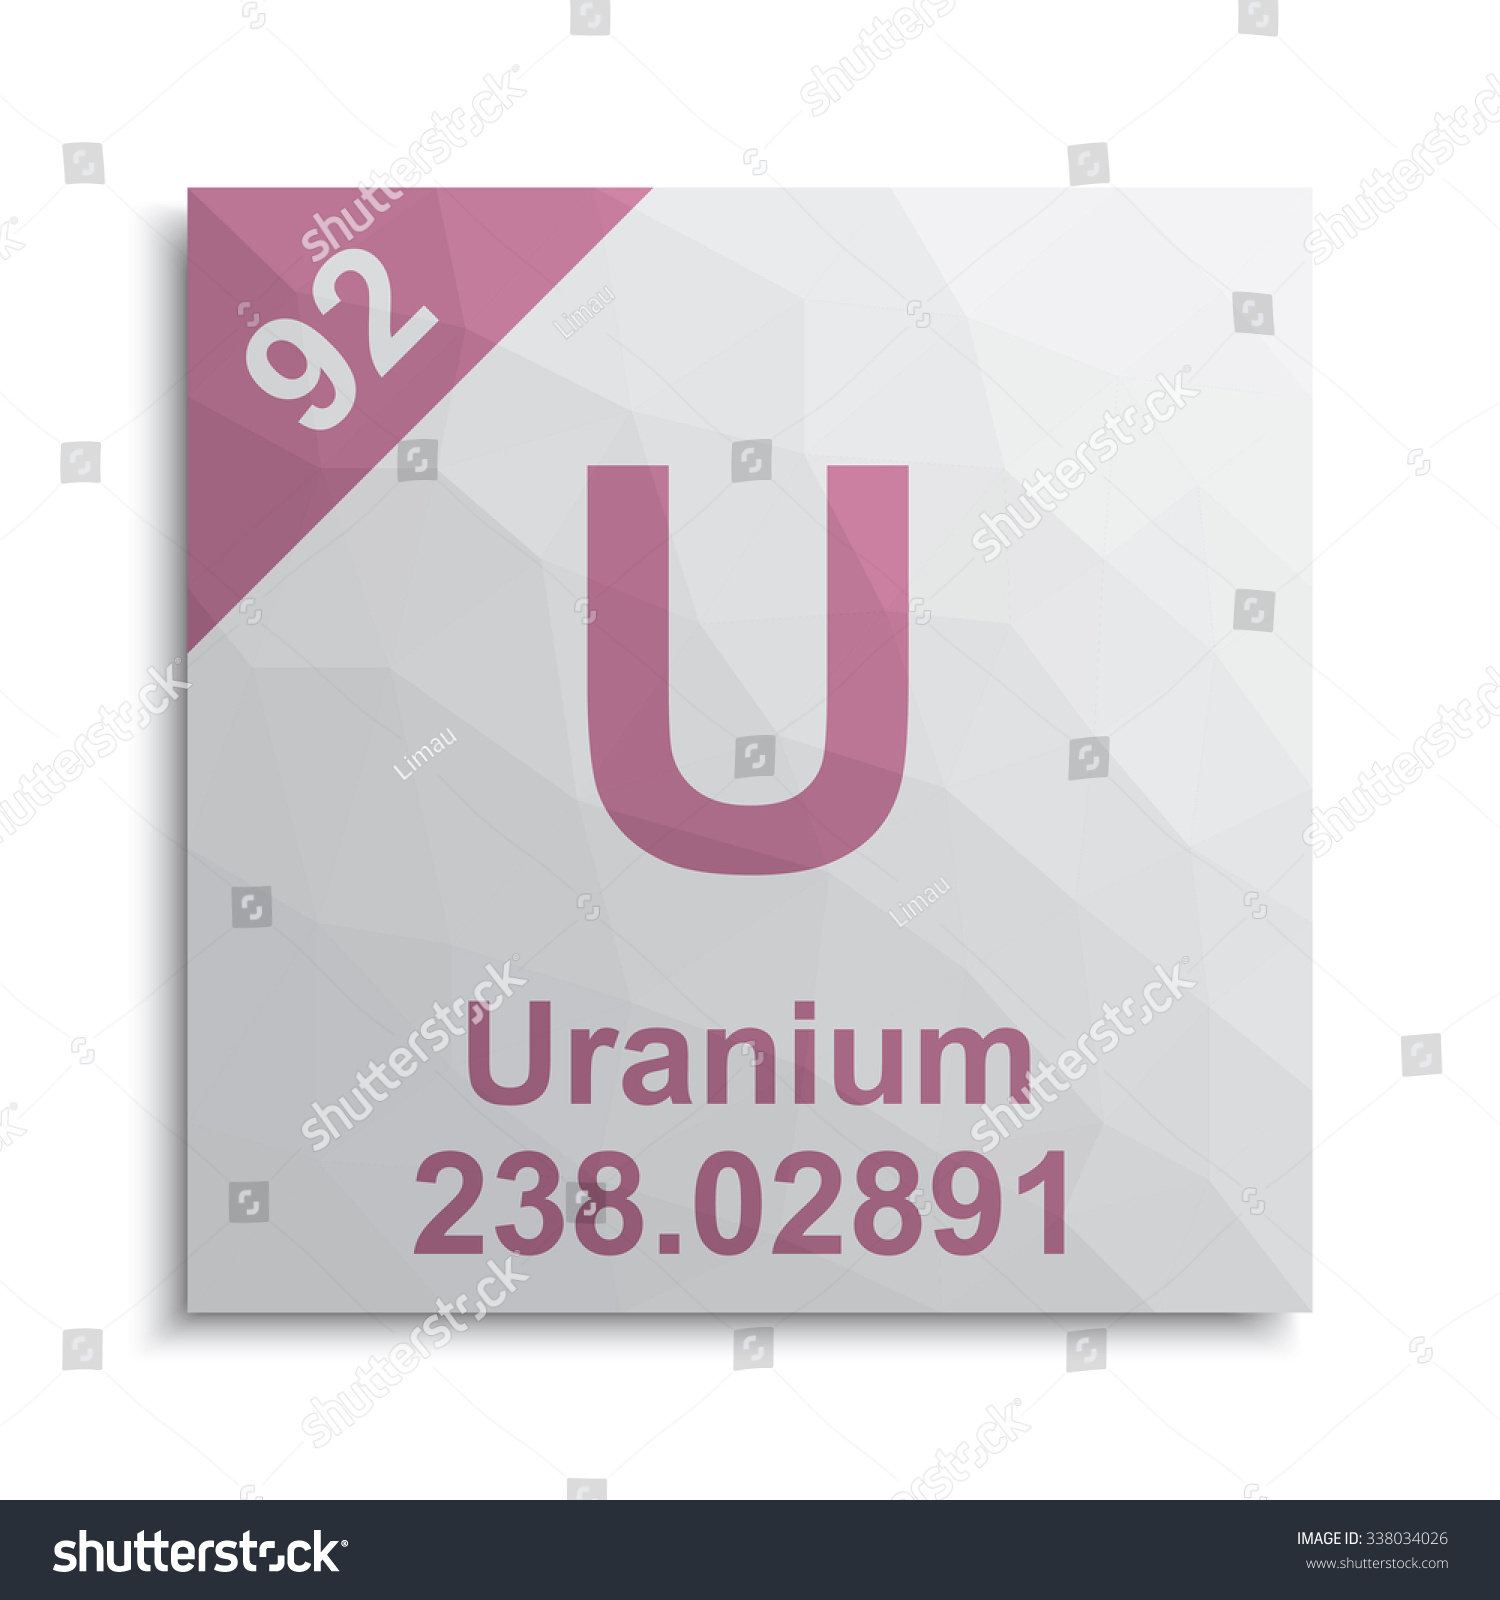 Uranium element periodic table stock vector 338034026 shutterstock uranium element periodic table gamestrikefo Image collections